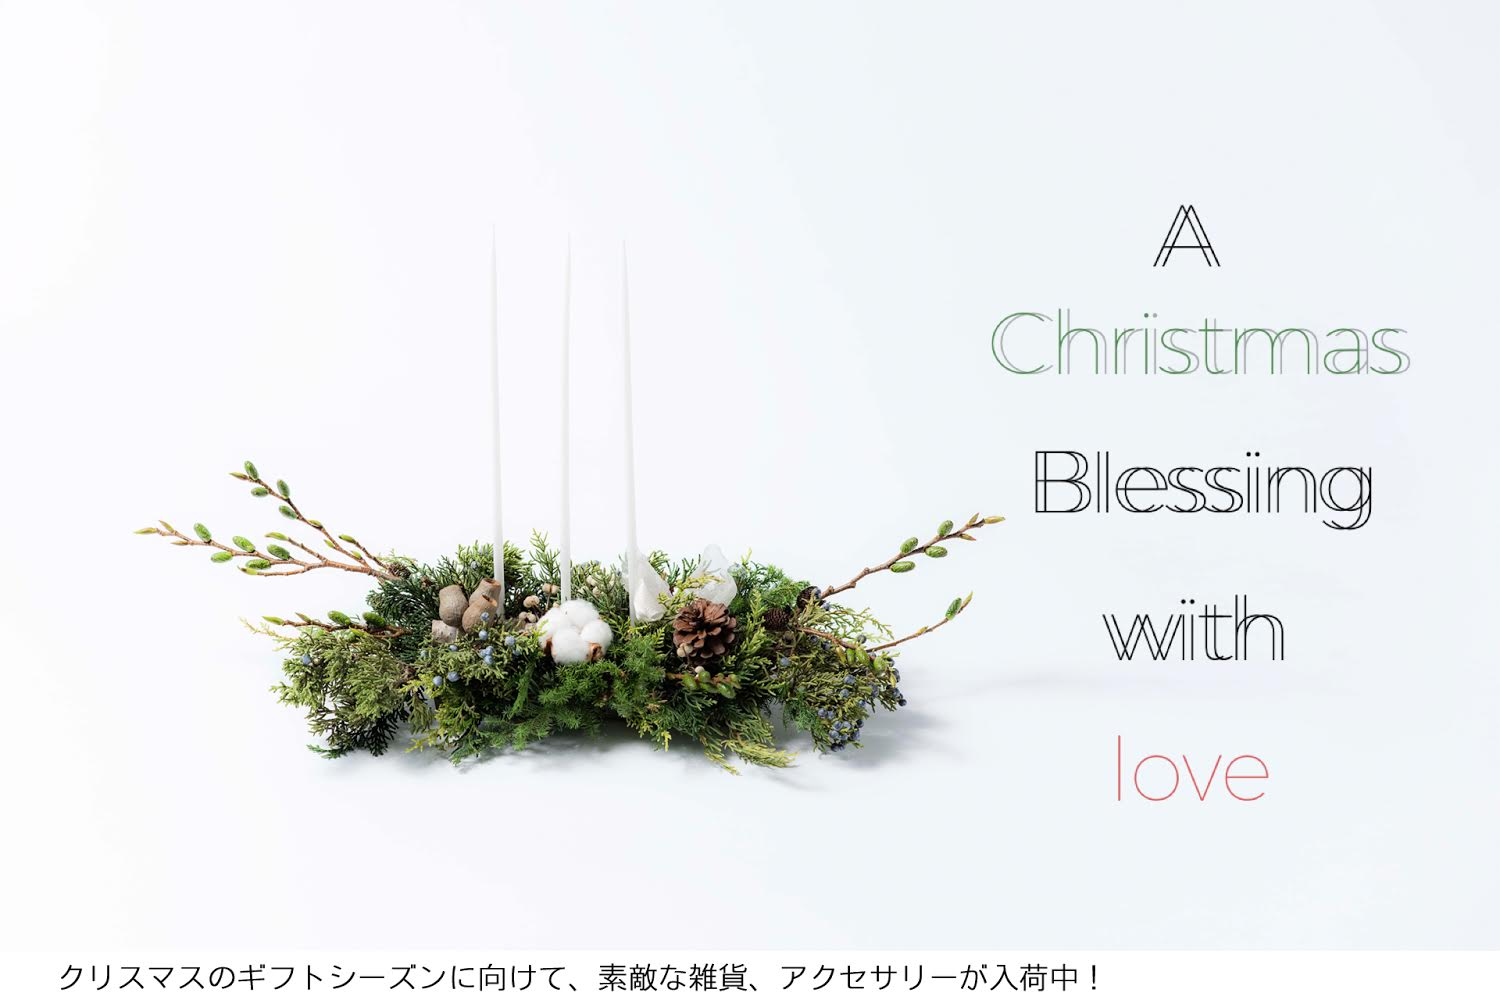 https://gigot.jp/news/a-christmas-bressing-with-love/